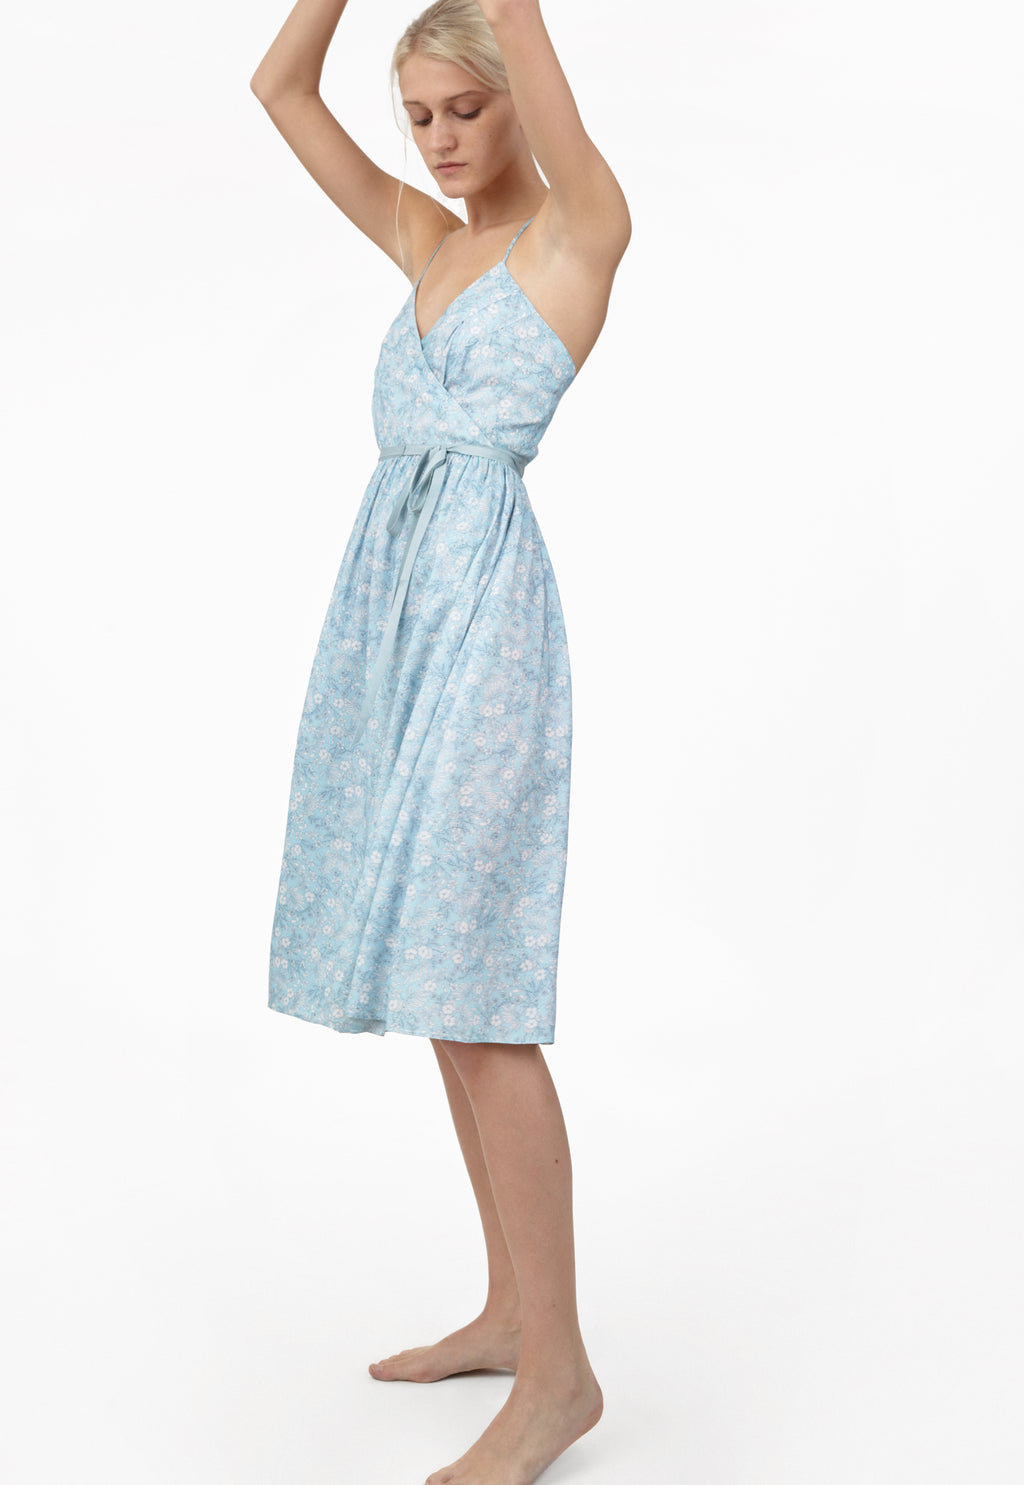 6 Shore Road Shimmer Sea Dress Women's Floral Blue Dress in XS, S, M, L - Summer 2018 Collection